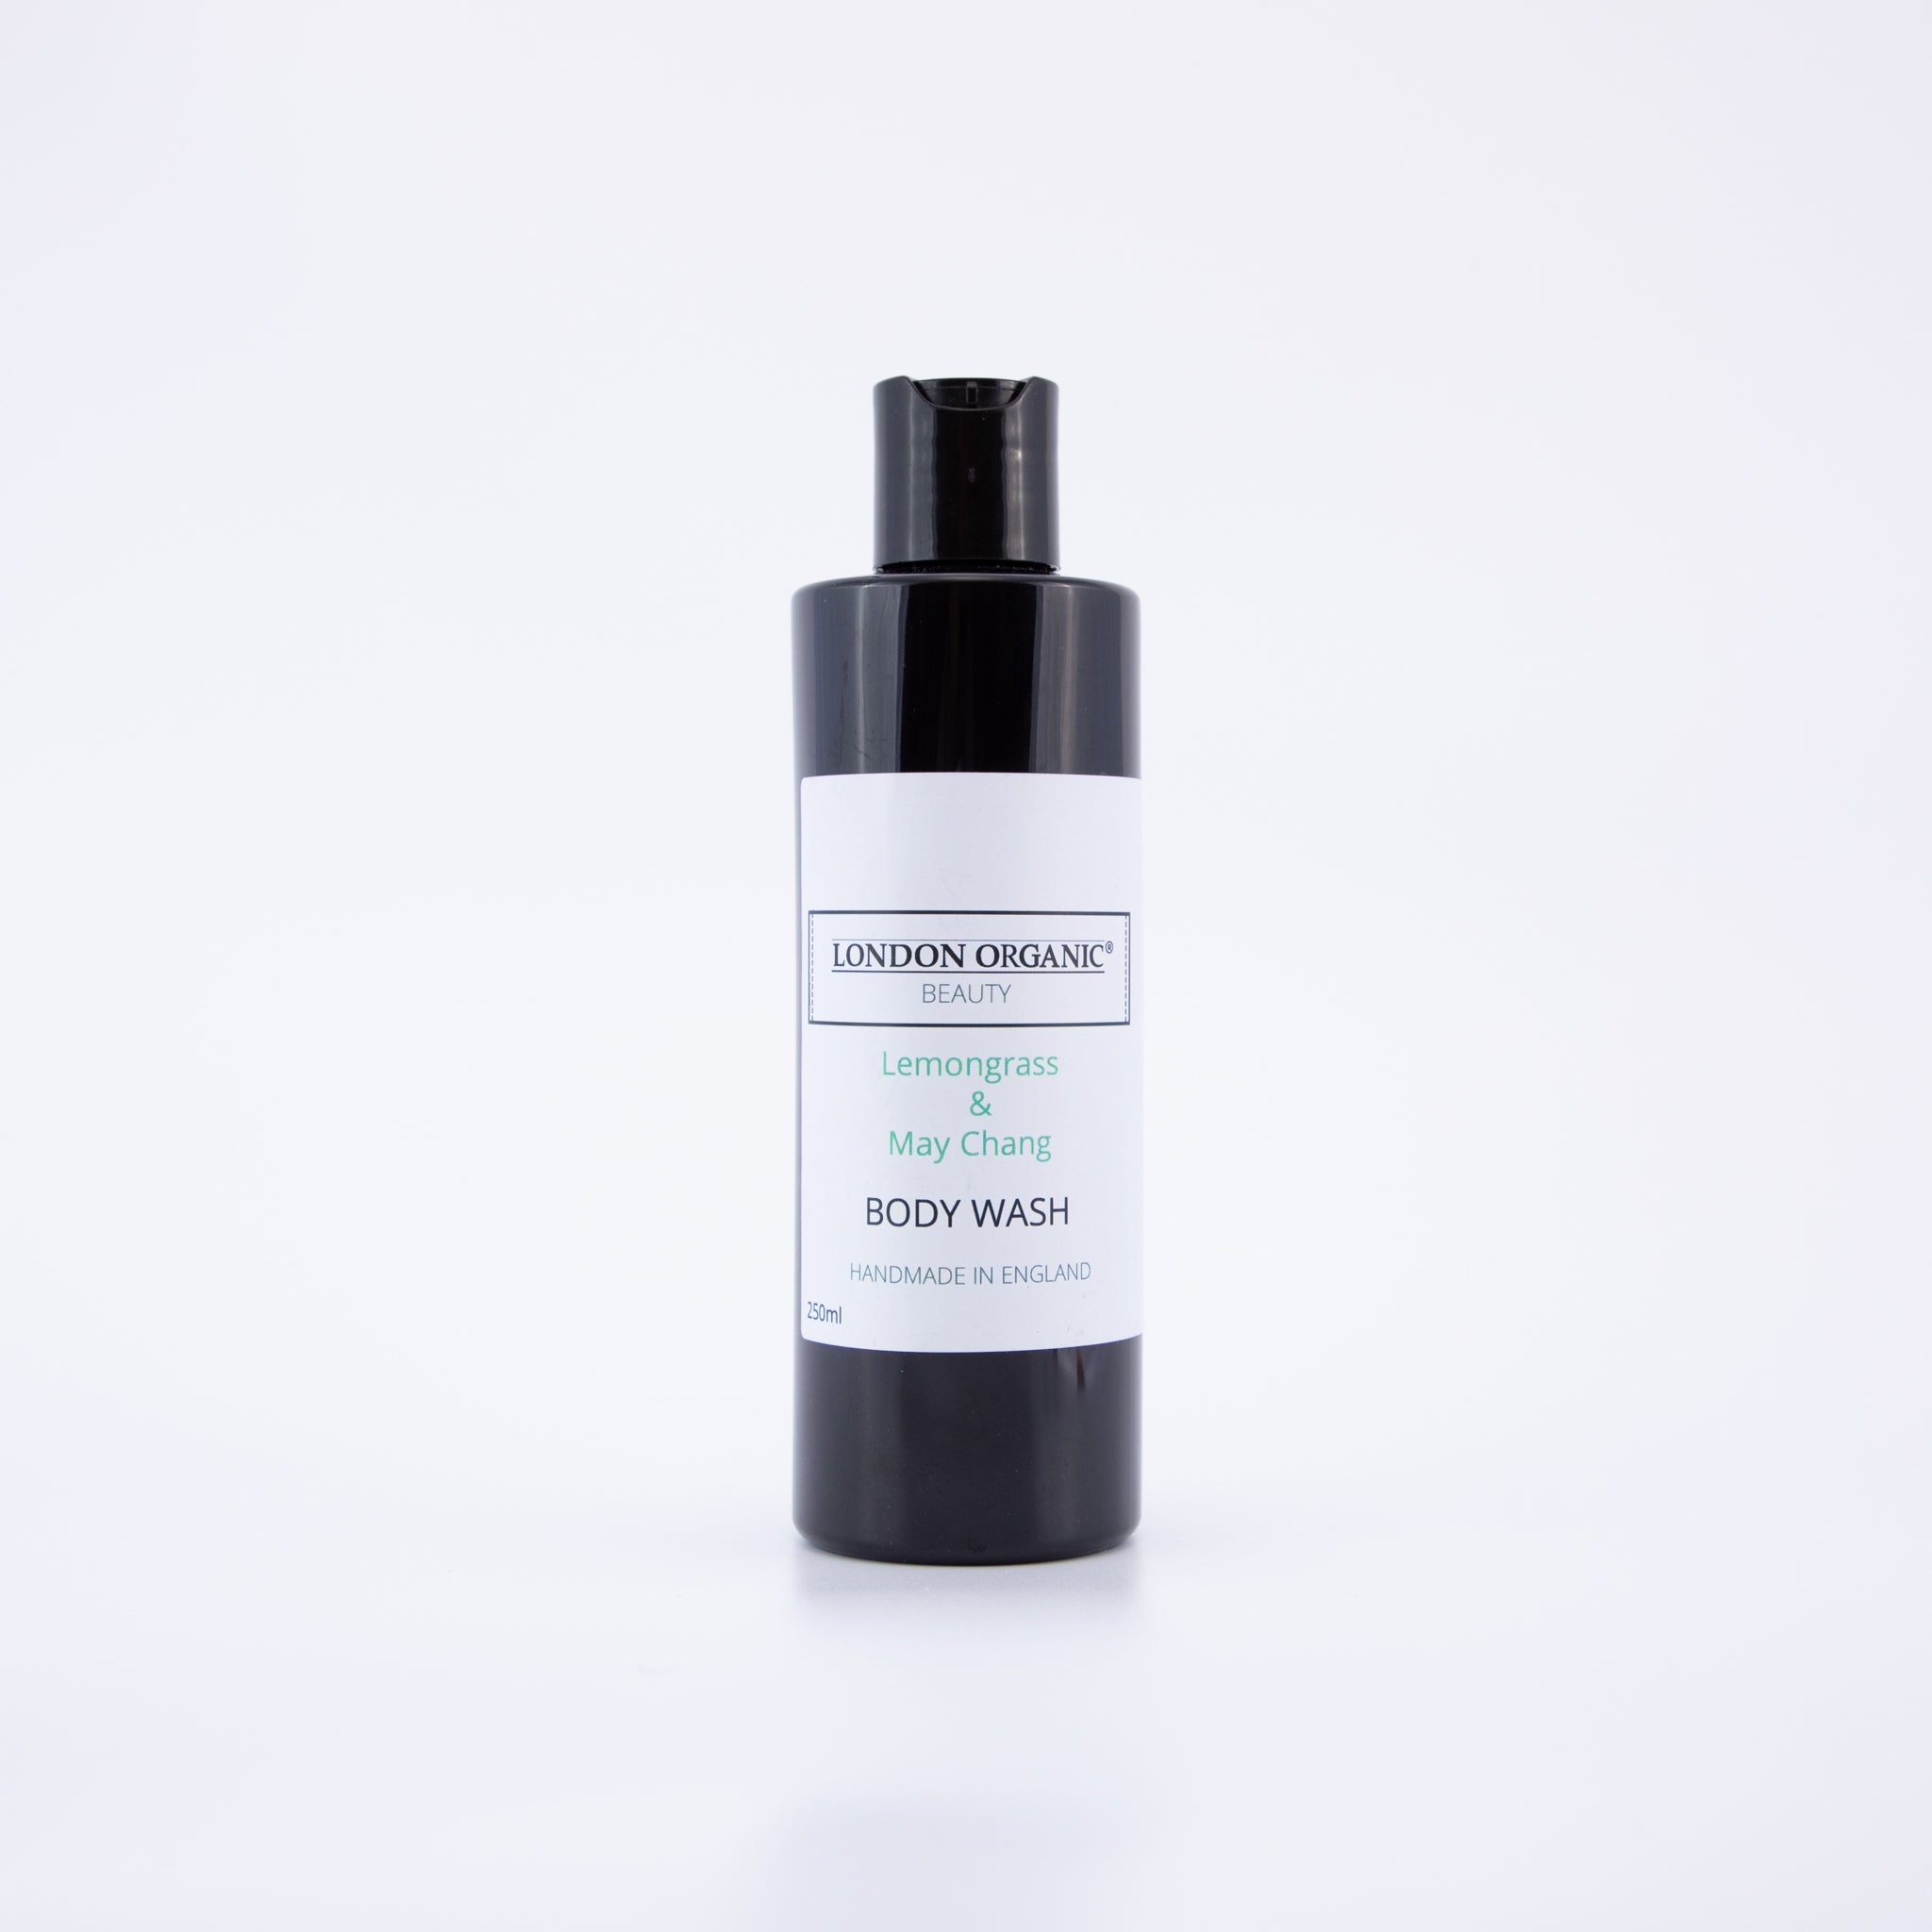 Lemongrass & May Chang Body Wash